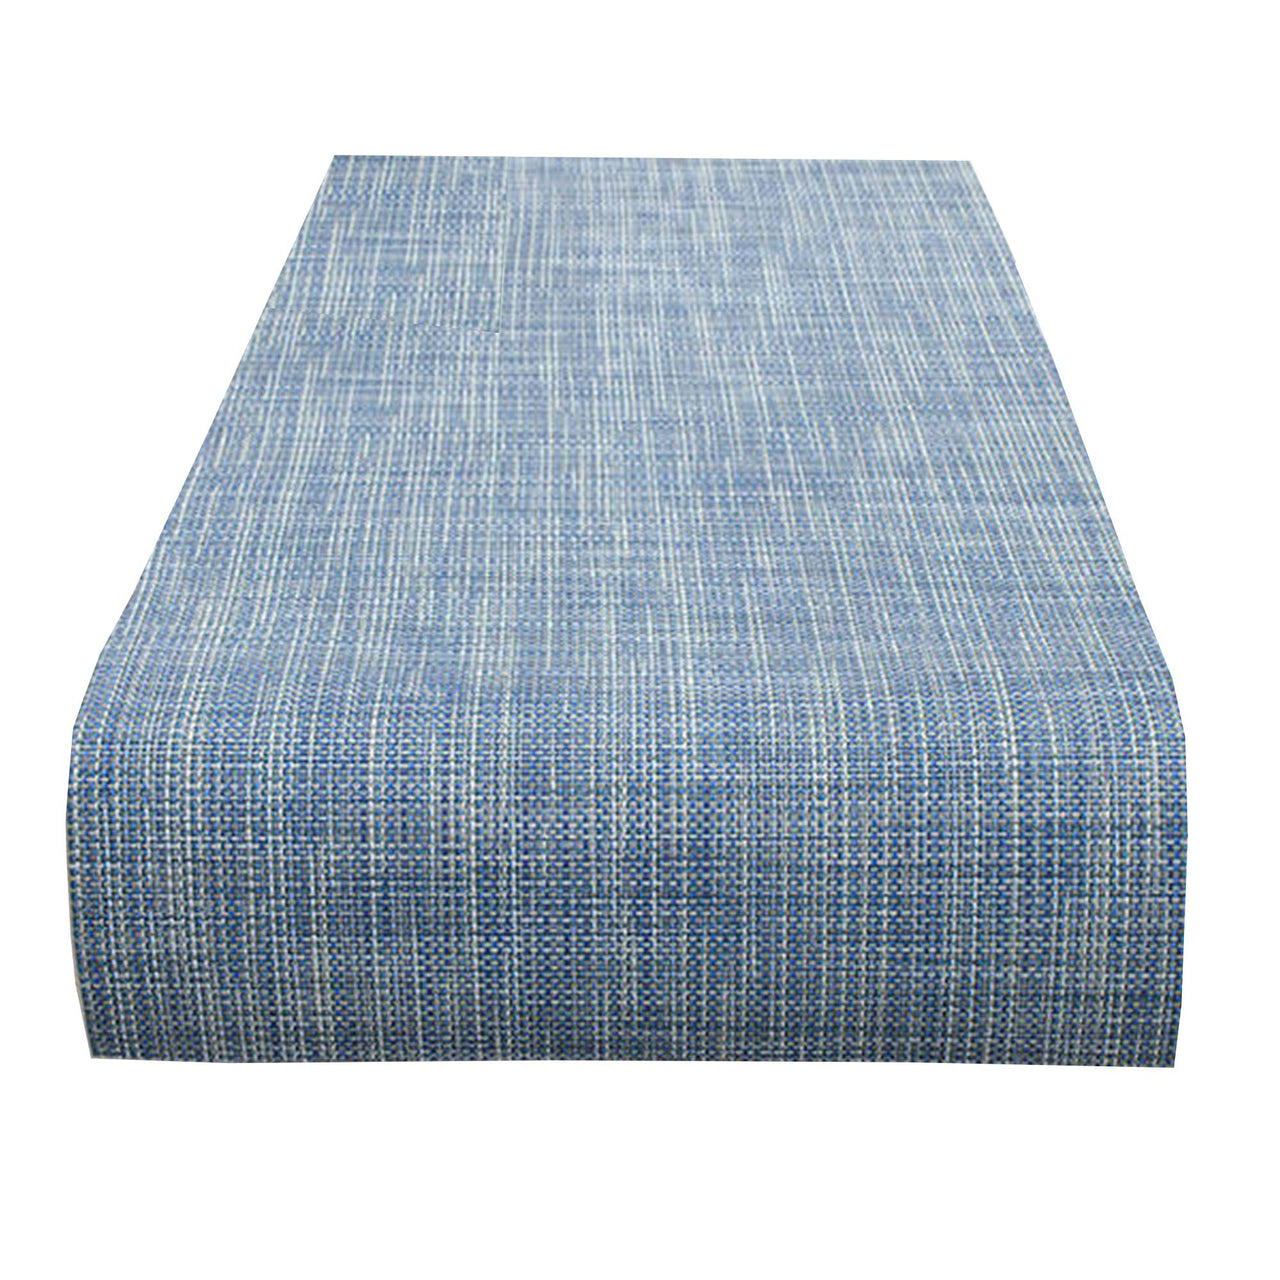 Mini Basketweave Table Runner: Chambray